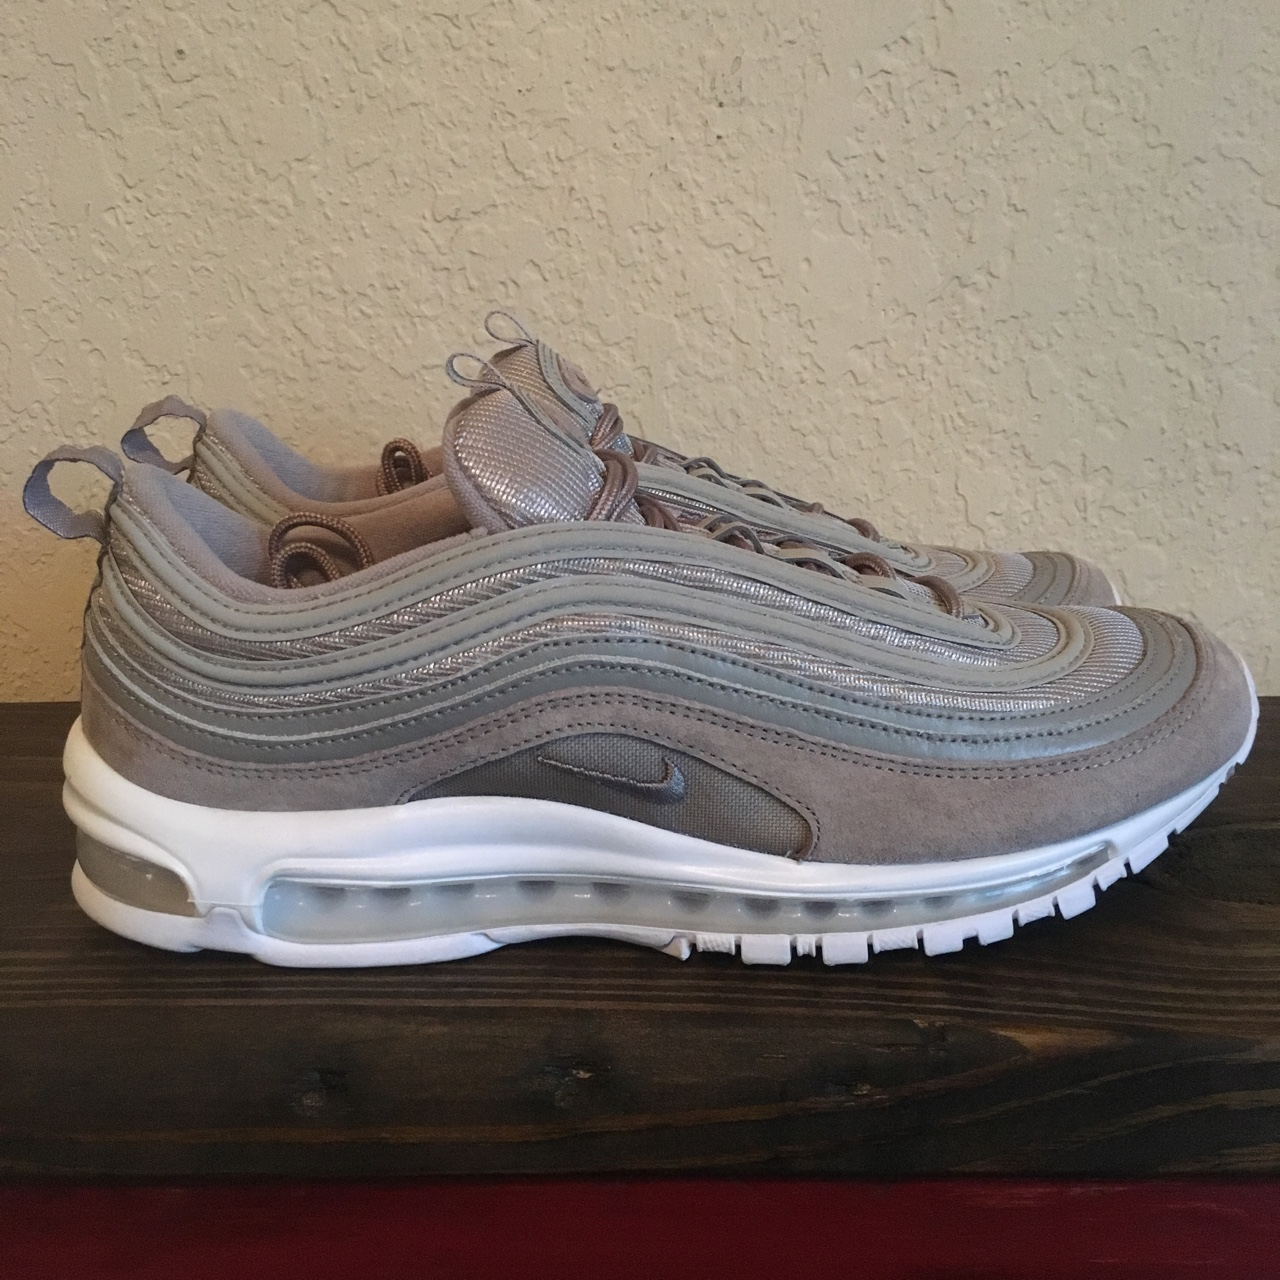 Nike Air Max 97 W chaussures or rouge marron Stylefile